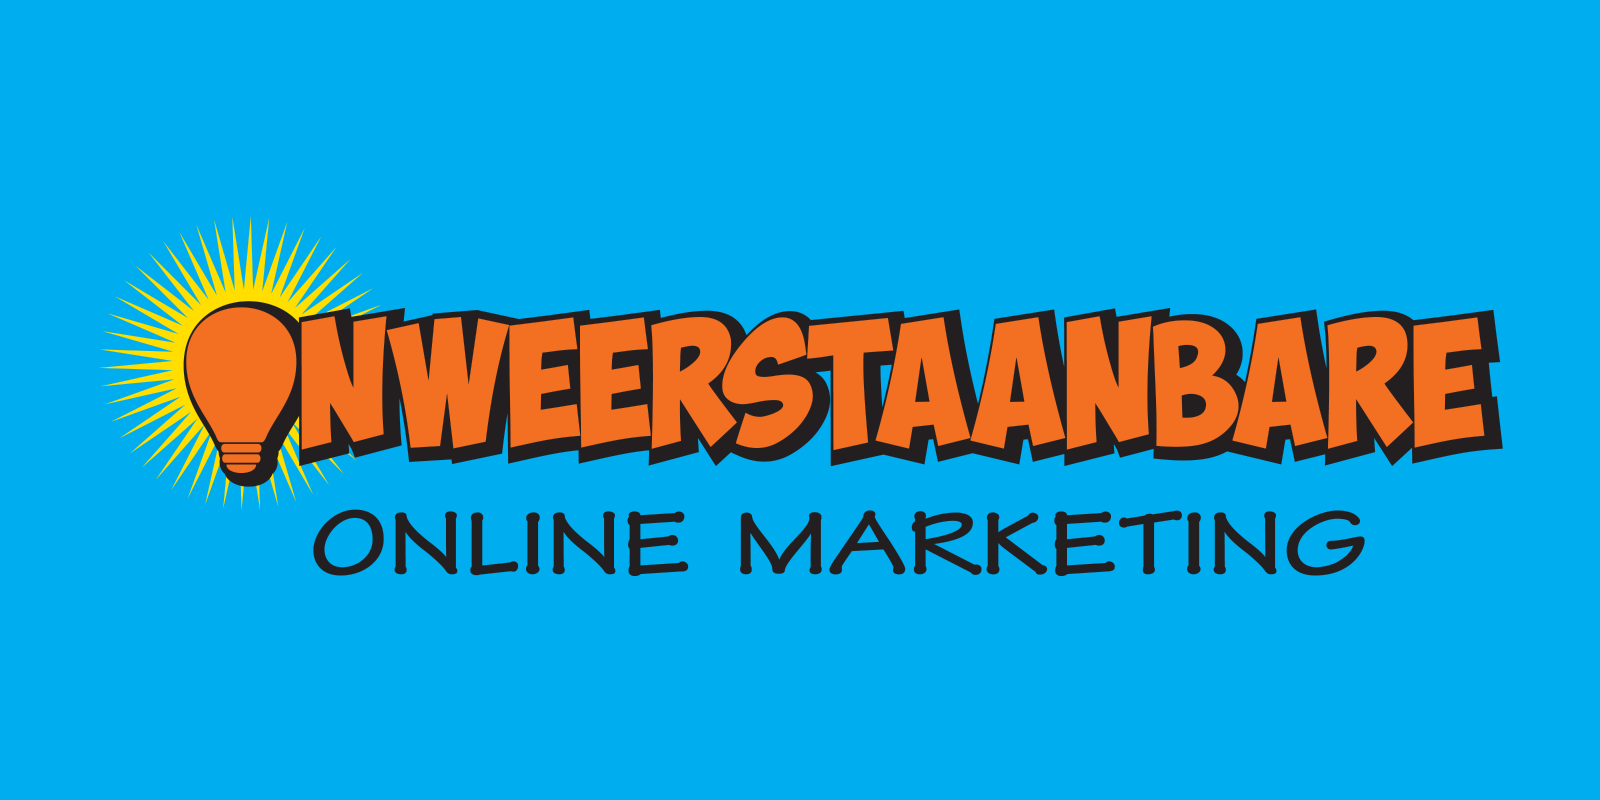 Onweerstaanbare Online Marketing - betaling in 3 termijnen